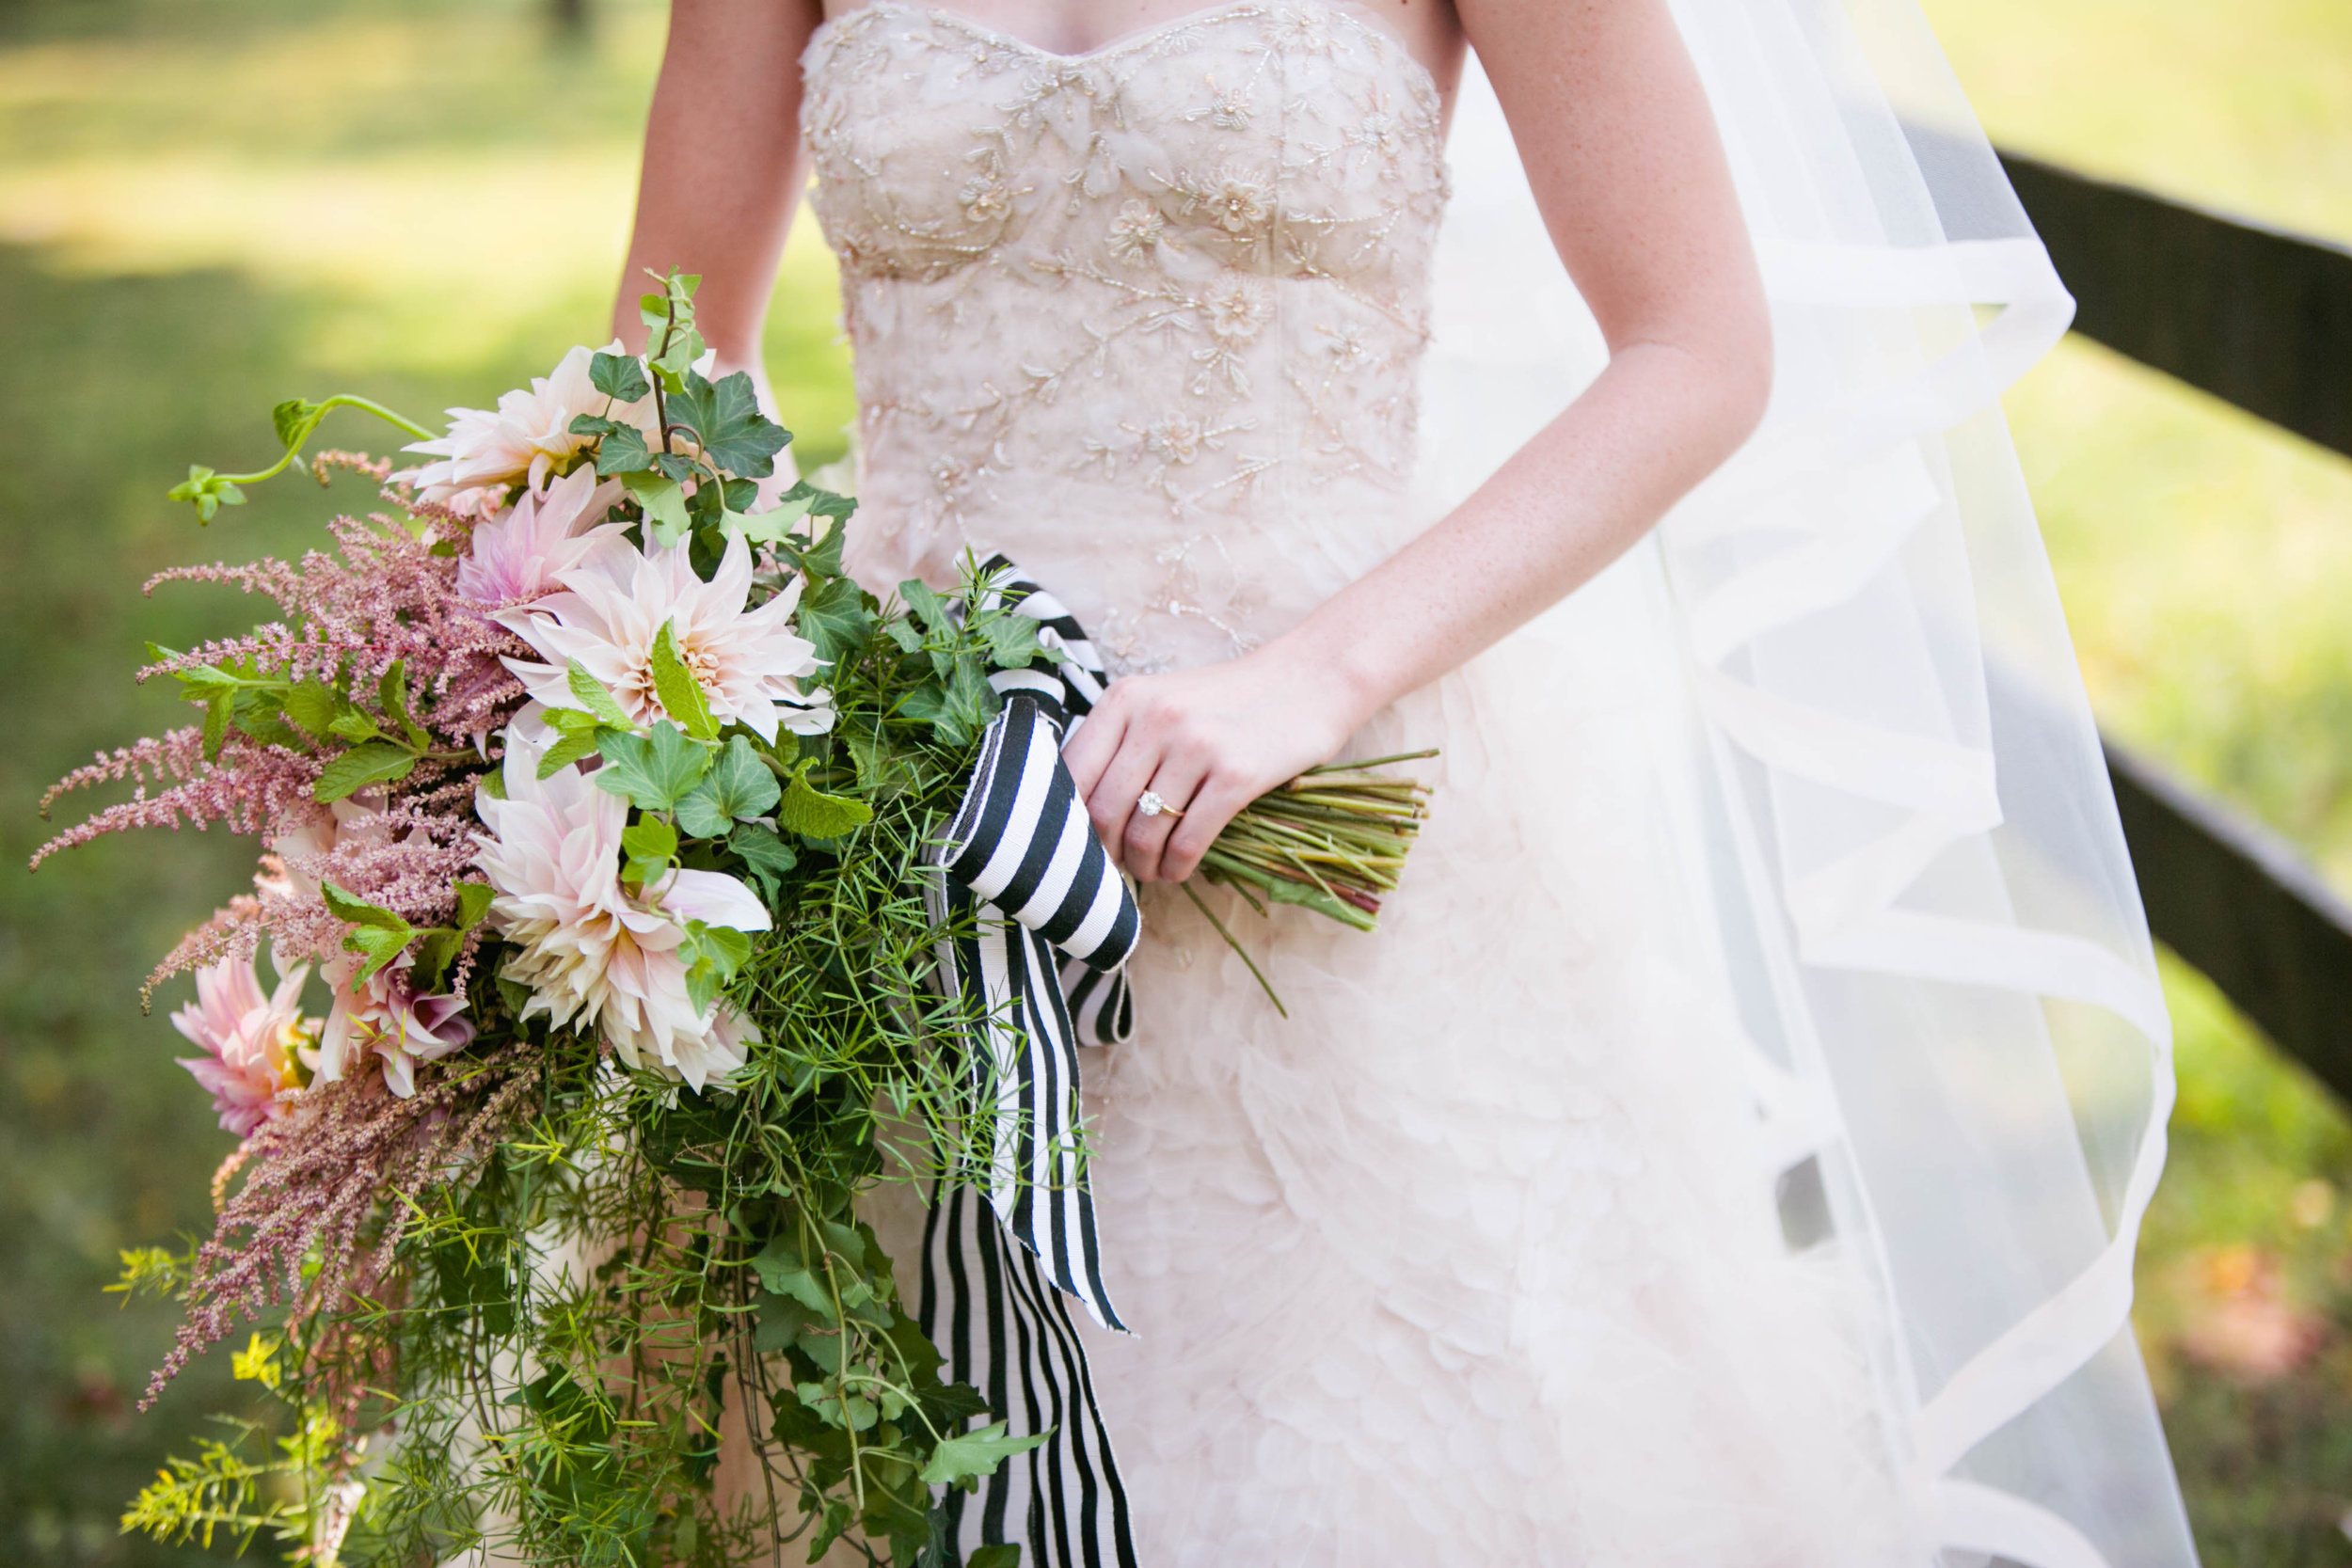 Elaine adores Black and White stripes, and France, and Jeff--who proposed to her in France! So when we found this Vintage French ribbon for her bouquet she was over the moon.